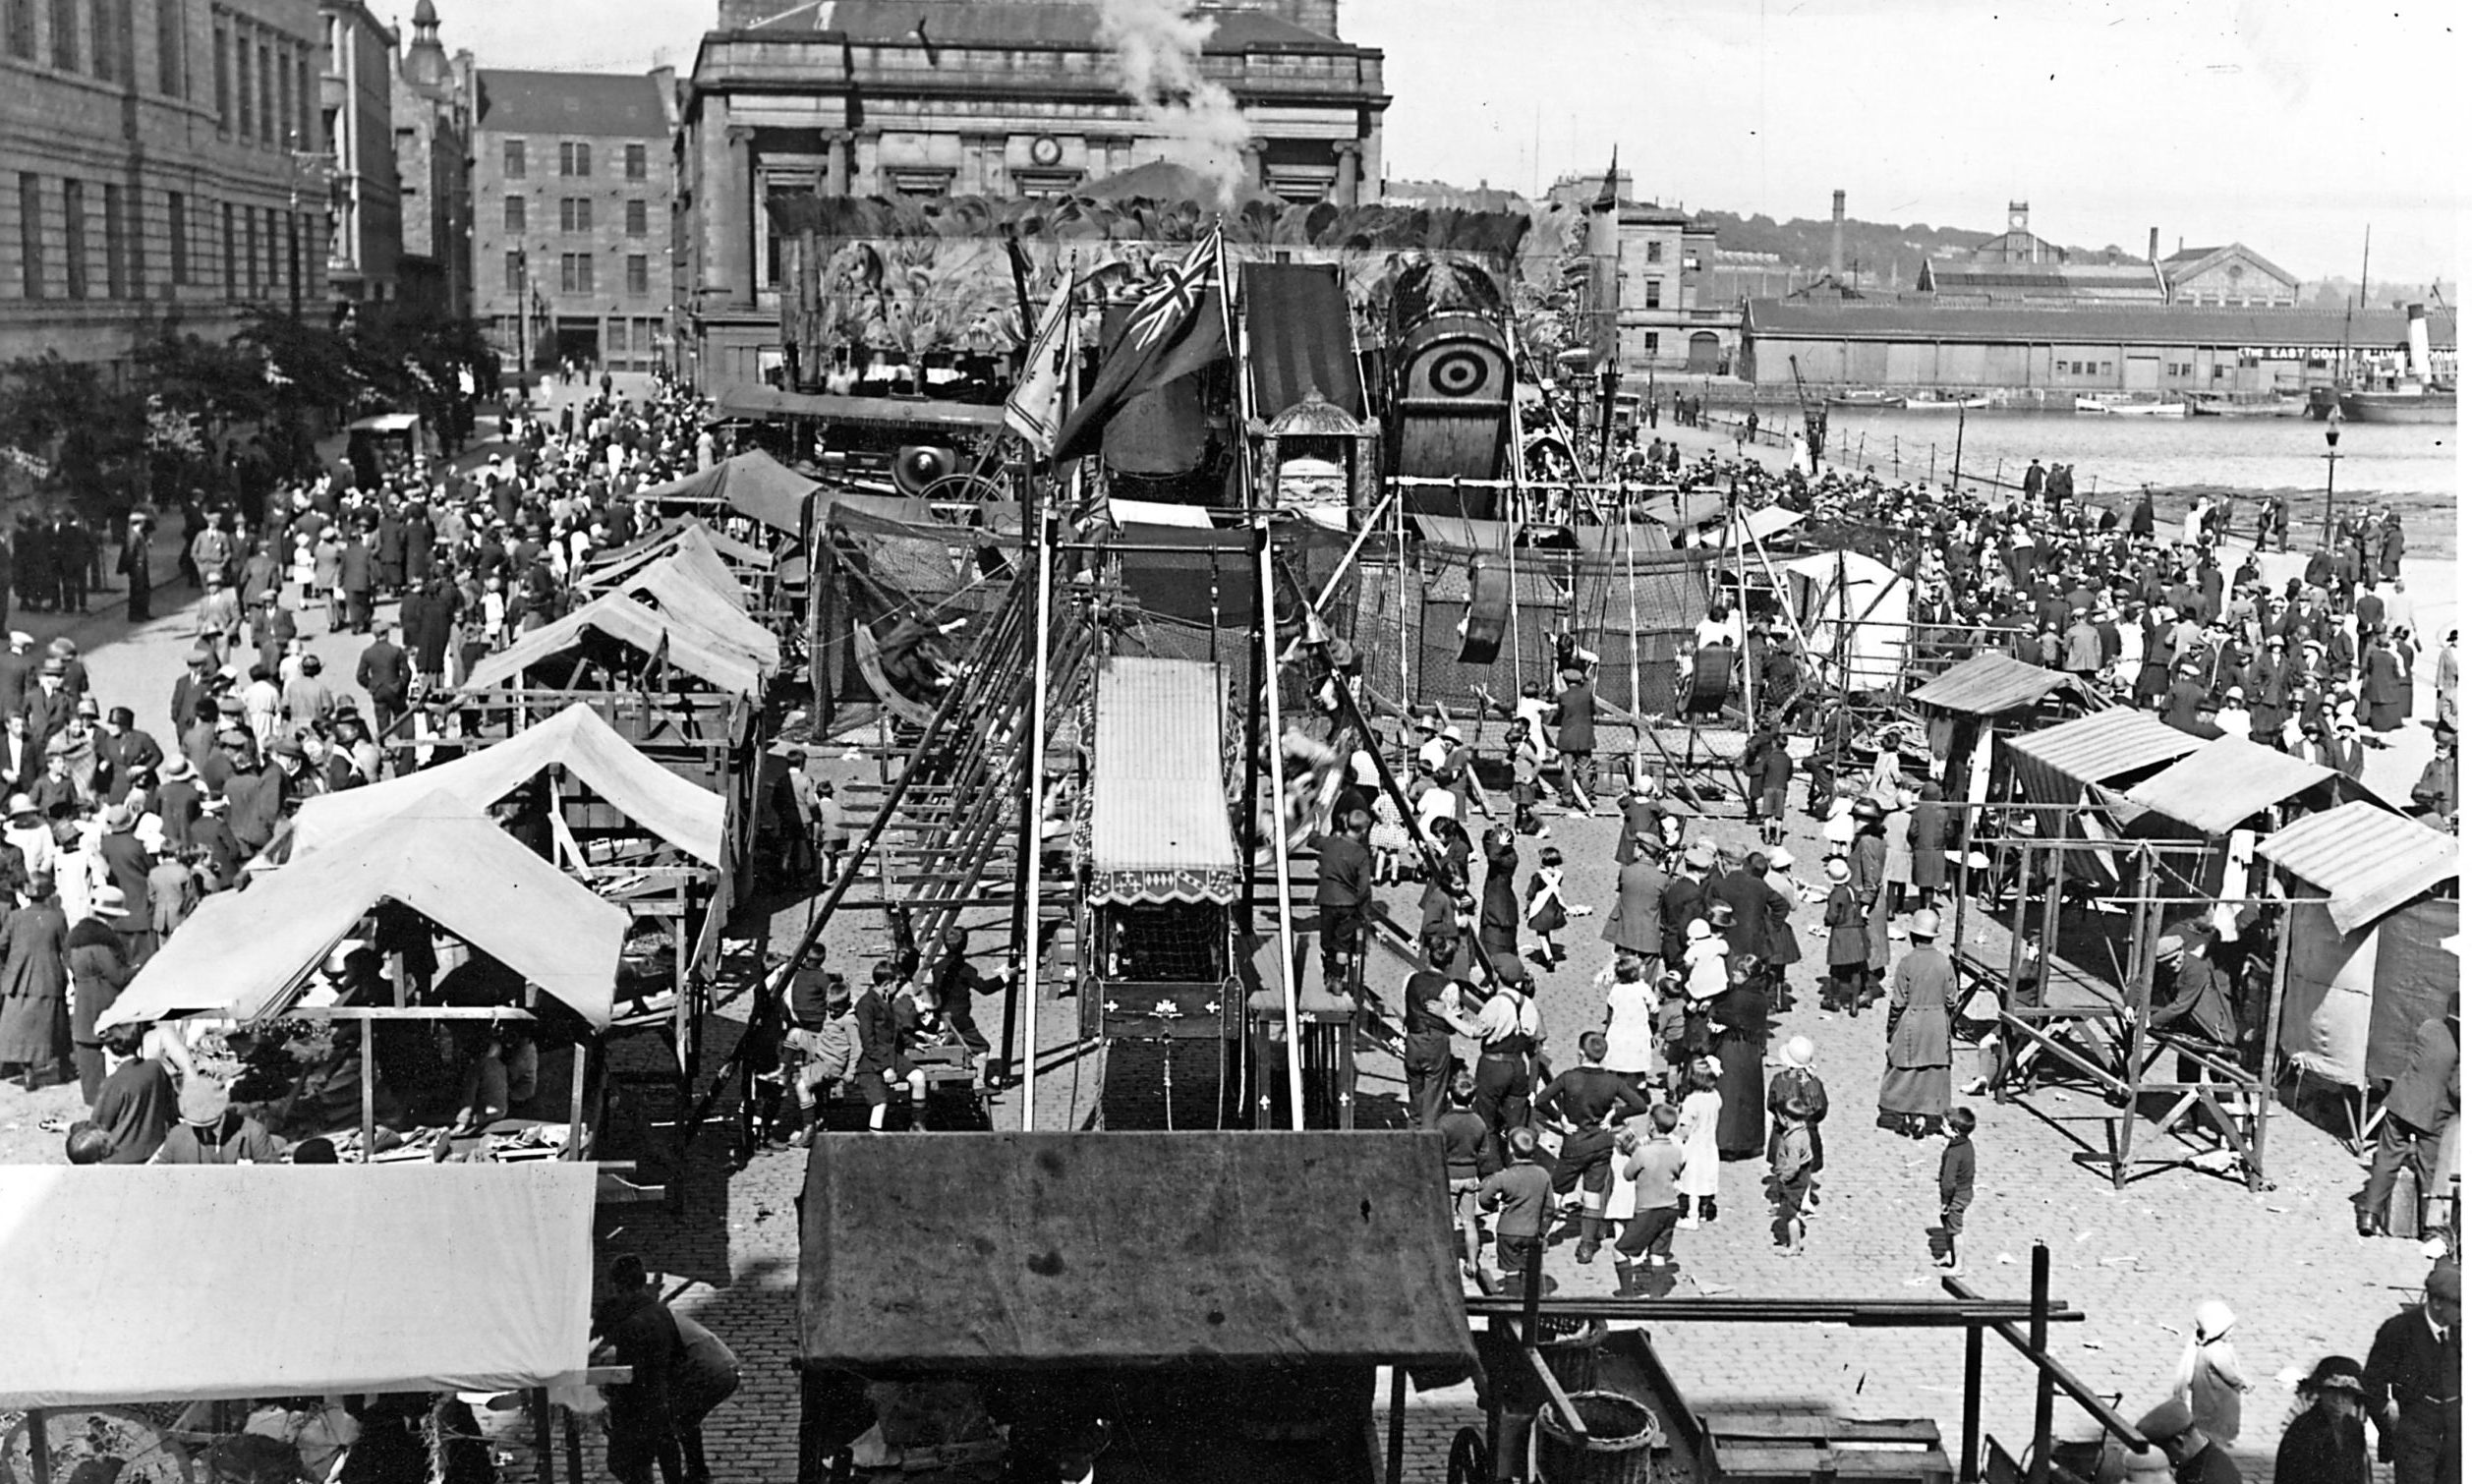 Greenmarket Lady Mary Fair in Dundee in the 1930s.